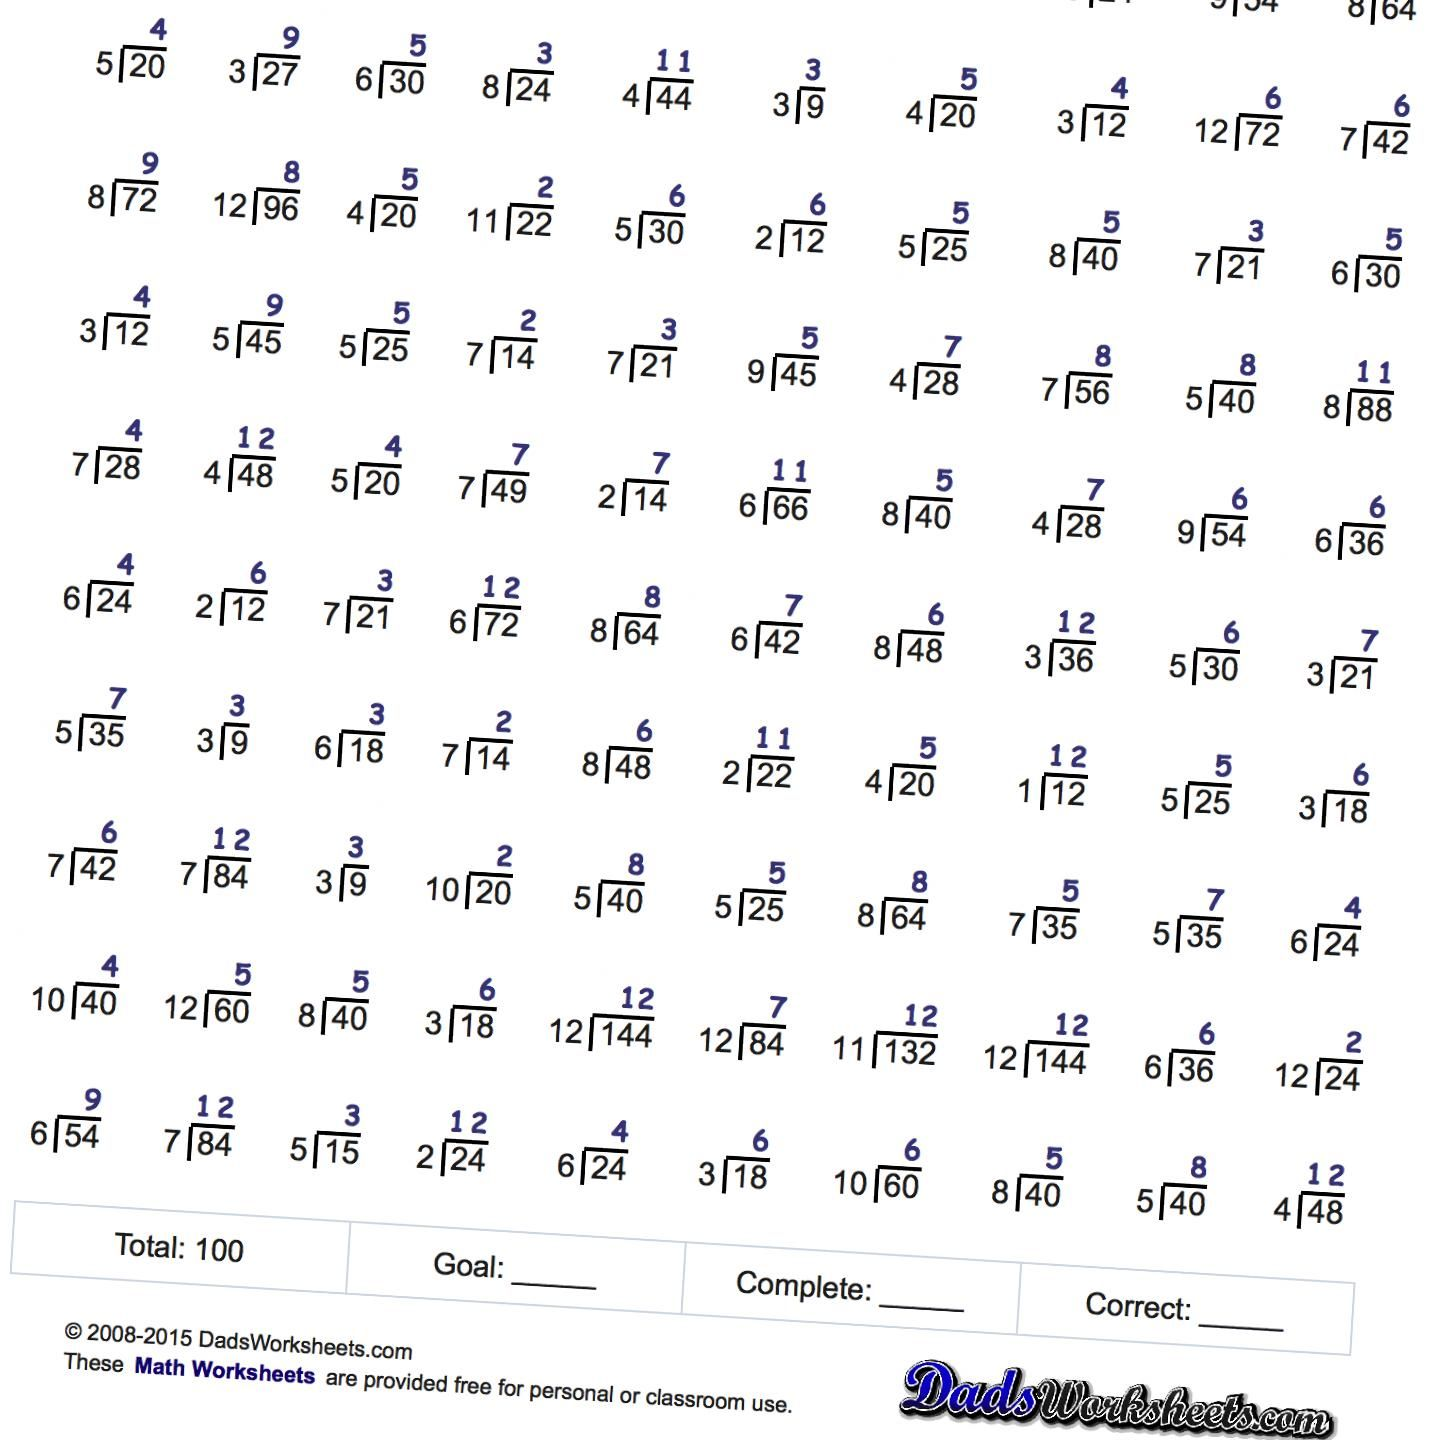 Worksheets Free Math Minute Worksheets these division worksheets are extensions to mad minute and rocketmath worksheet sets they are